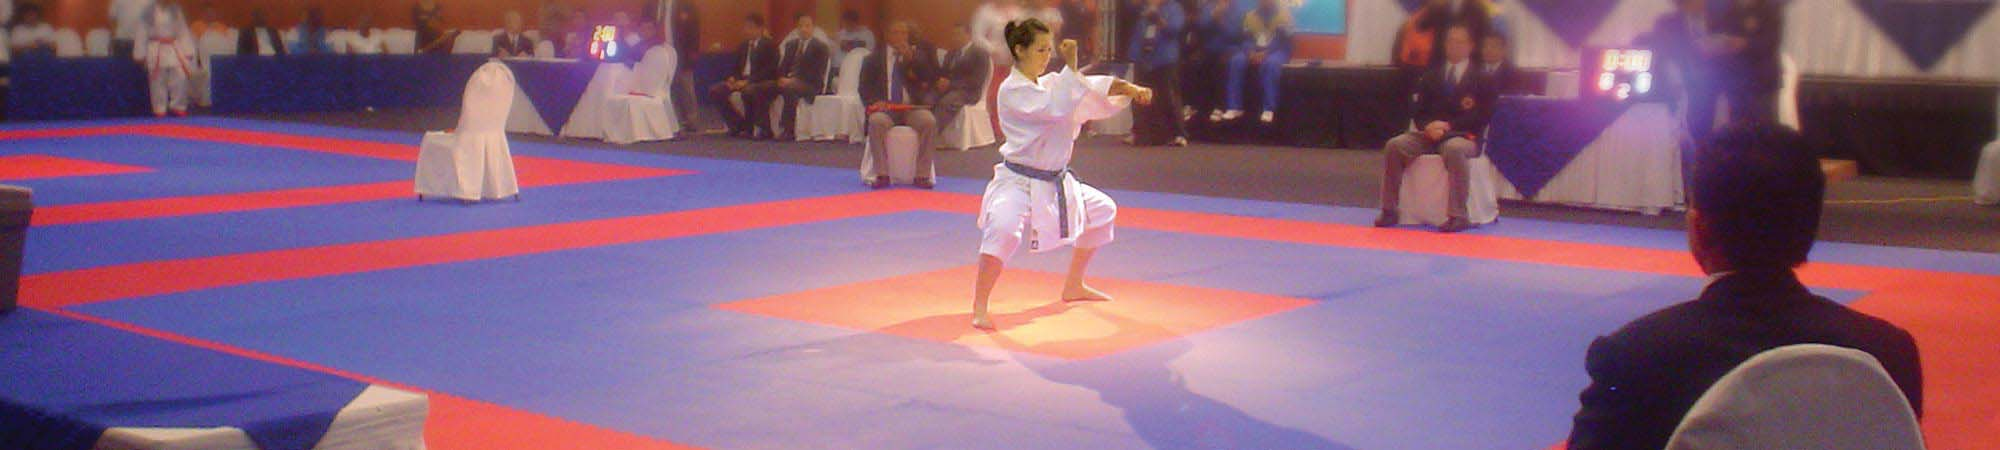 Hatashita | Canada's Training Mats and Sport Flooring Supplier